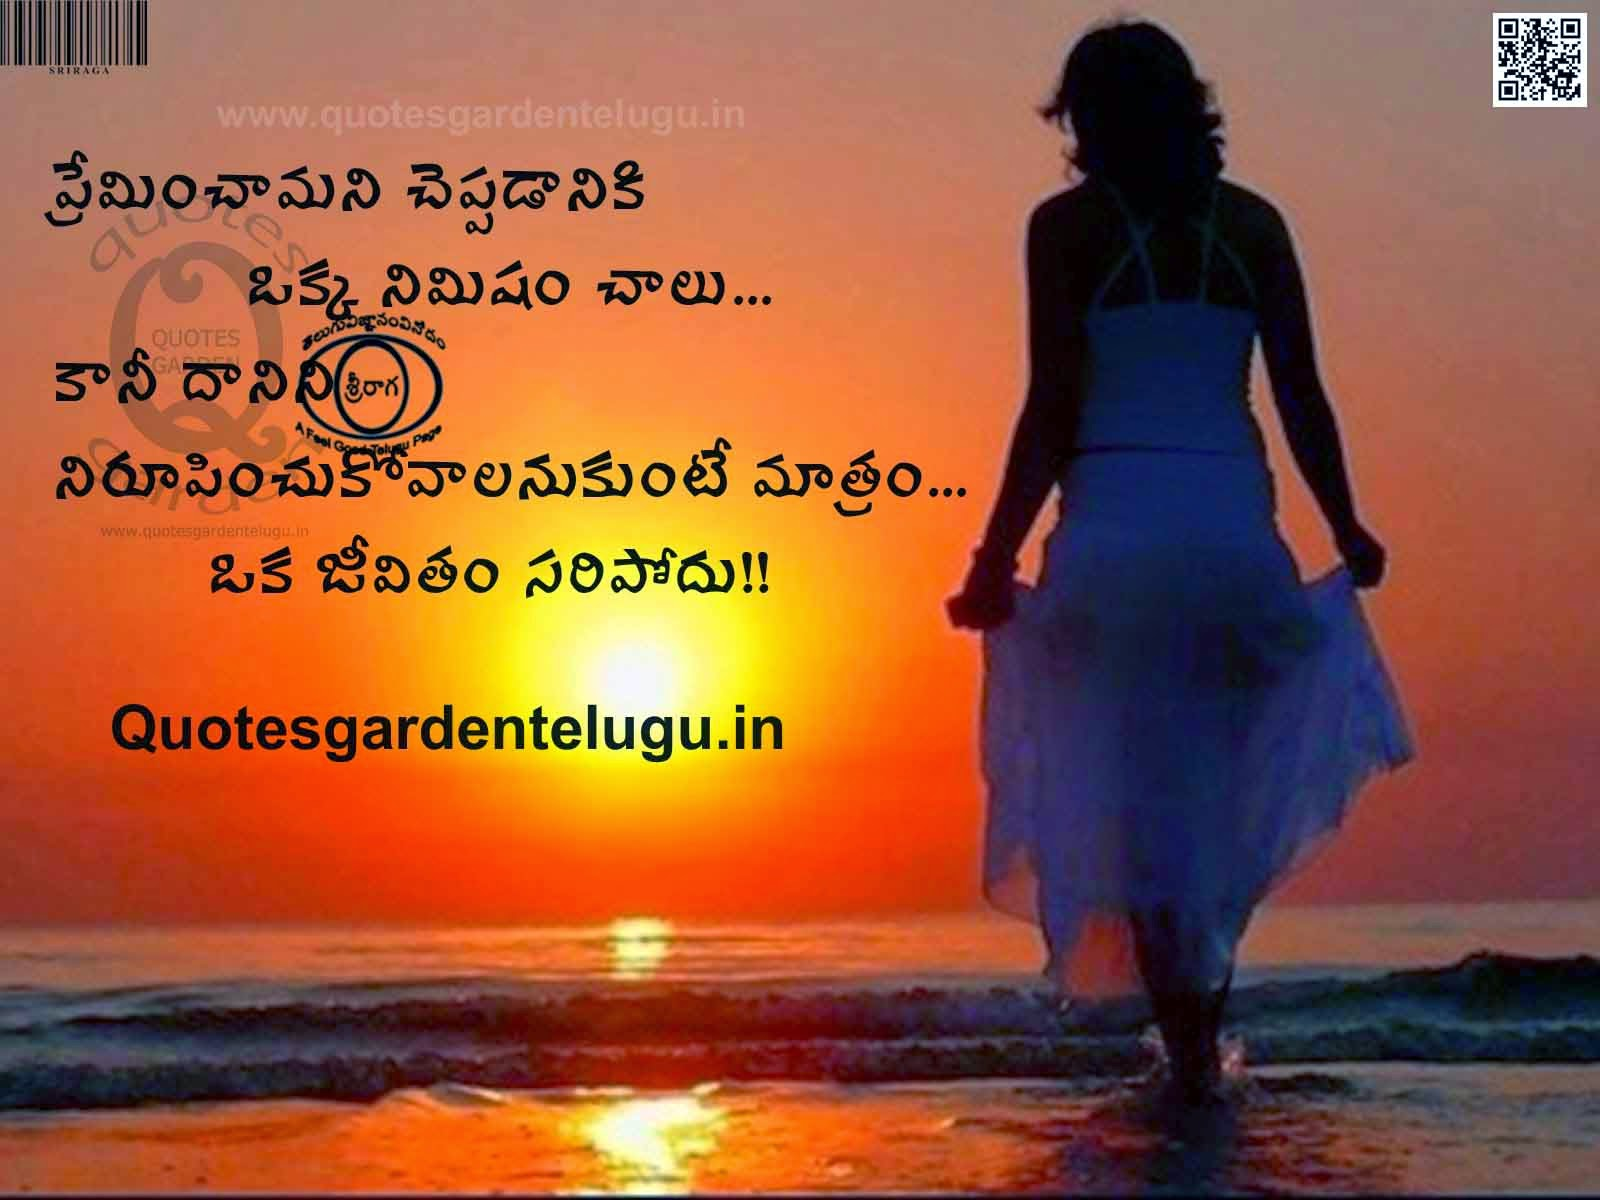 Best Telugu Love Quotes with Images HDwallpapers | QUOTES ...